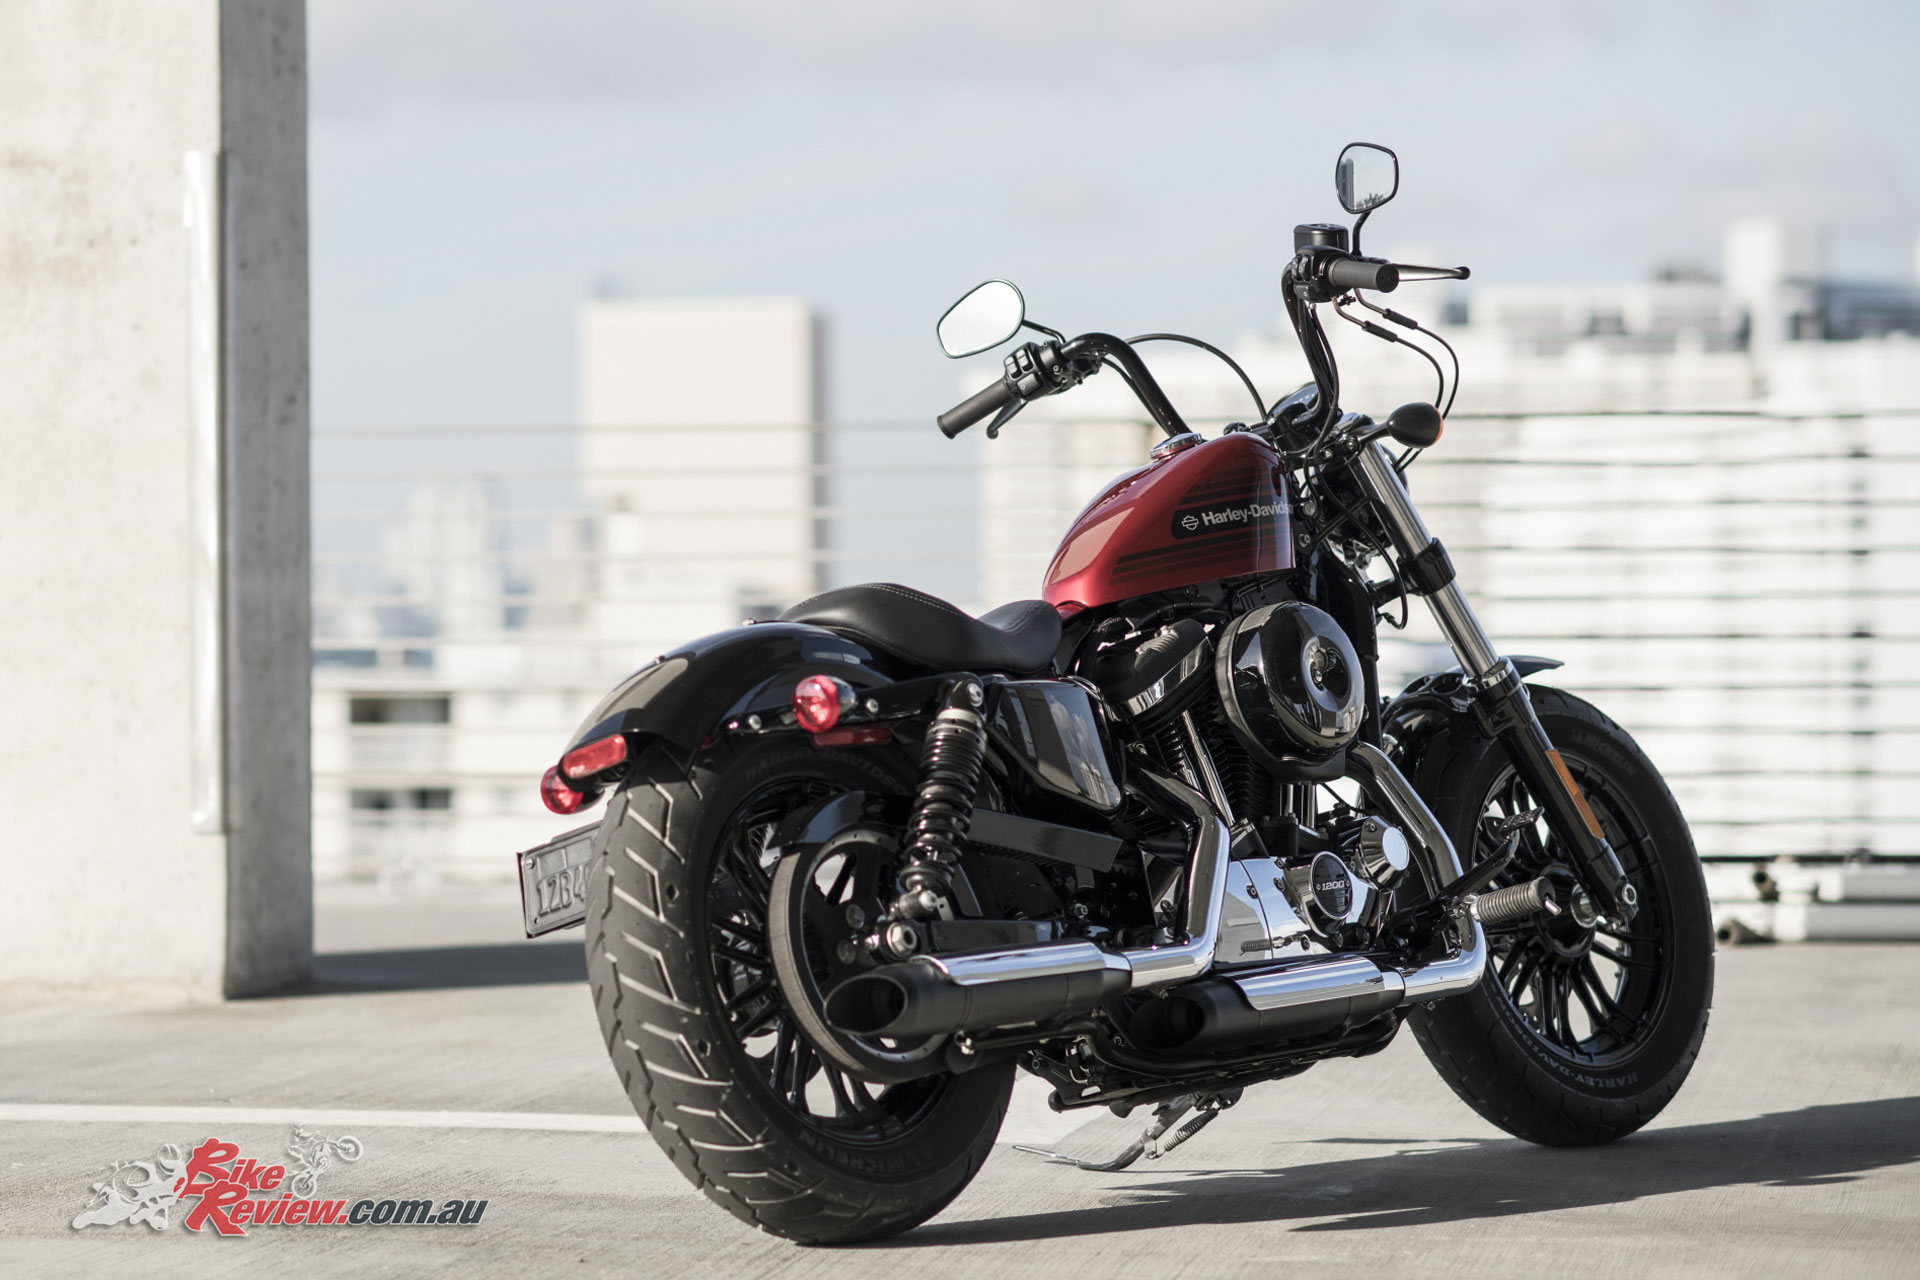 New Model: 2018 Harley-Davidson Iron 1200 - Bike Review